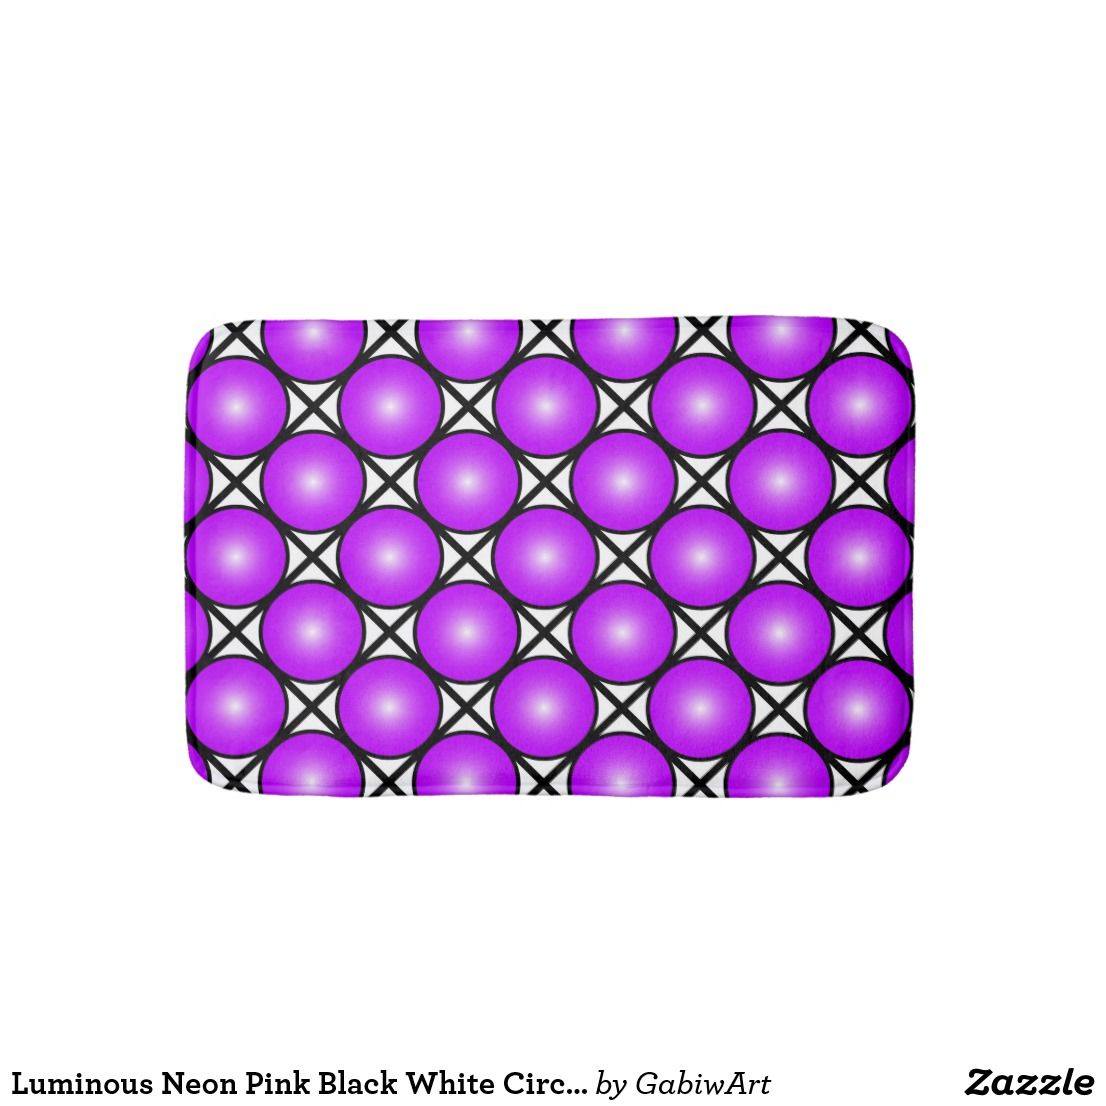 Badematte Schwarz Magenta Pink Dots Black White Lattice Pattern Bath Mat Zazzle